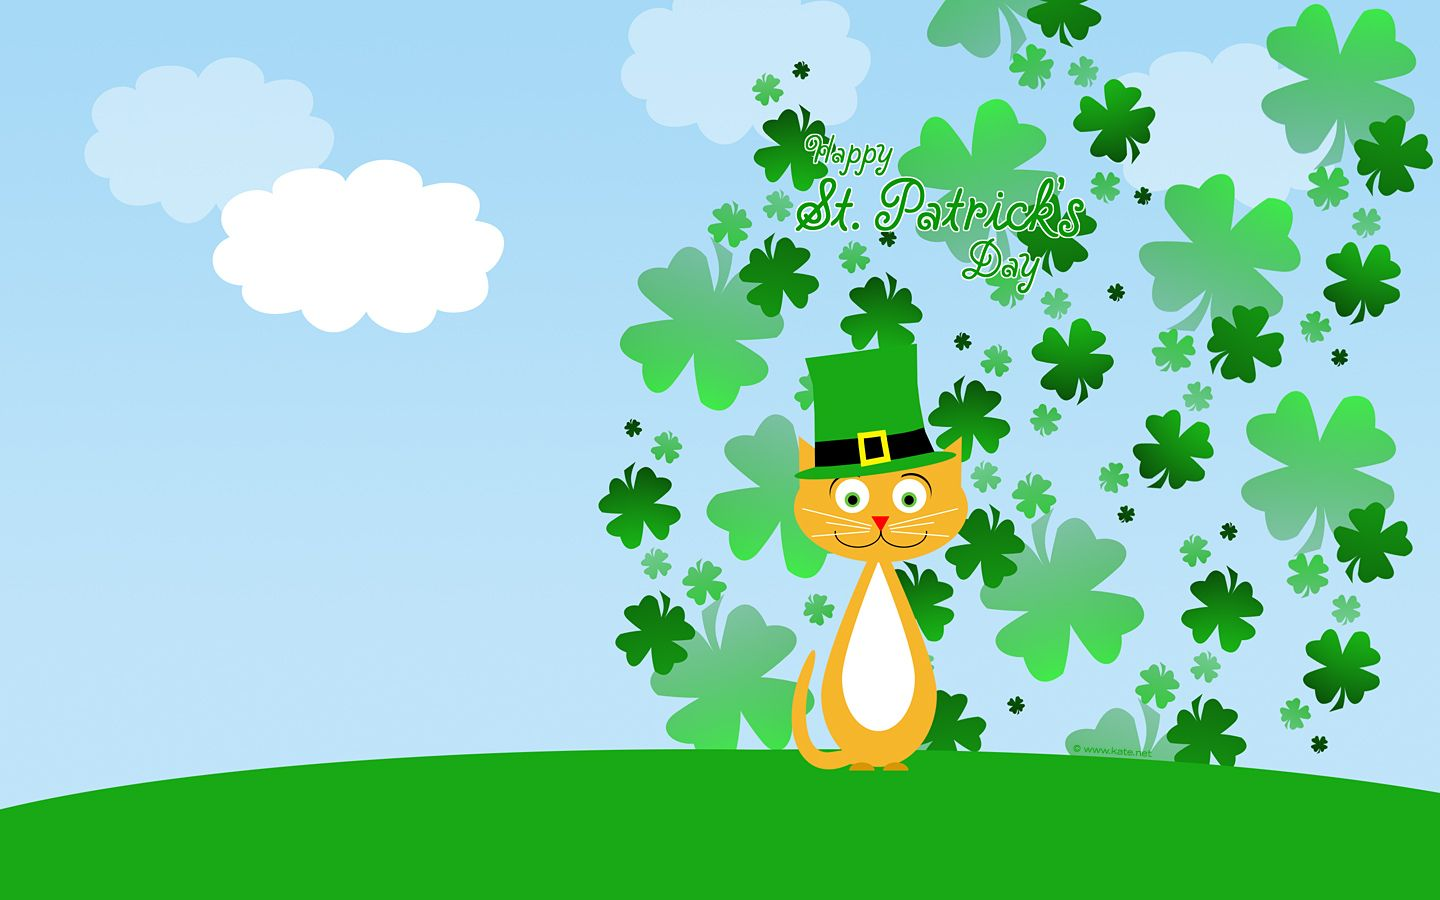 8 Awesome St Patricks Day Wallpaper For Your PC Desktop or Mac 1440x900